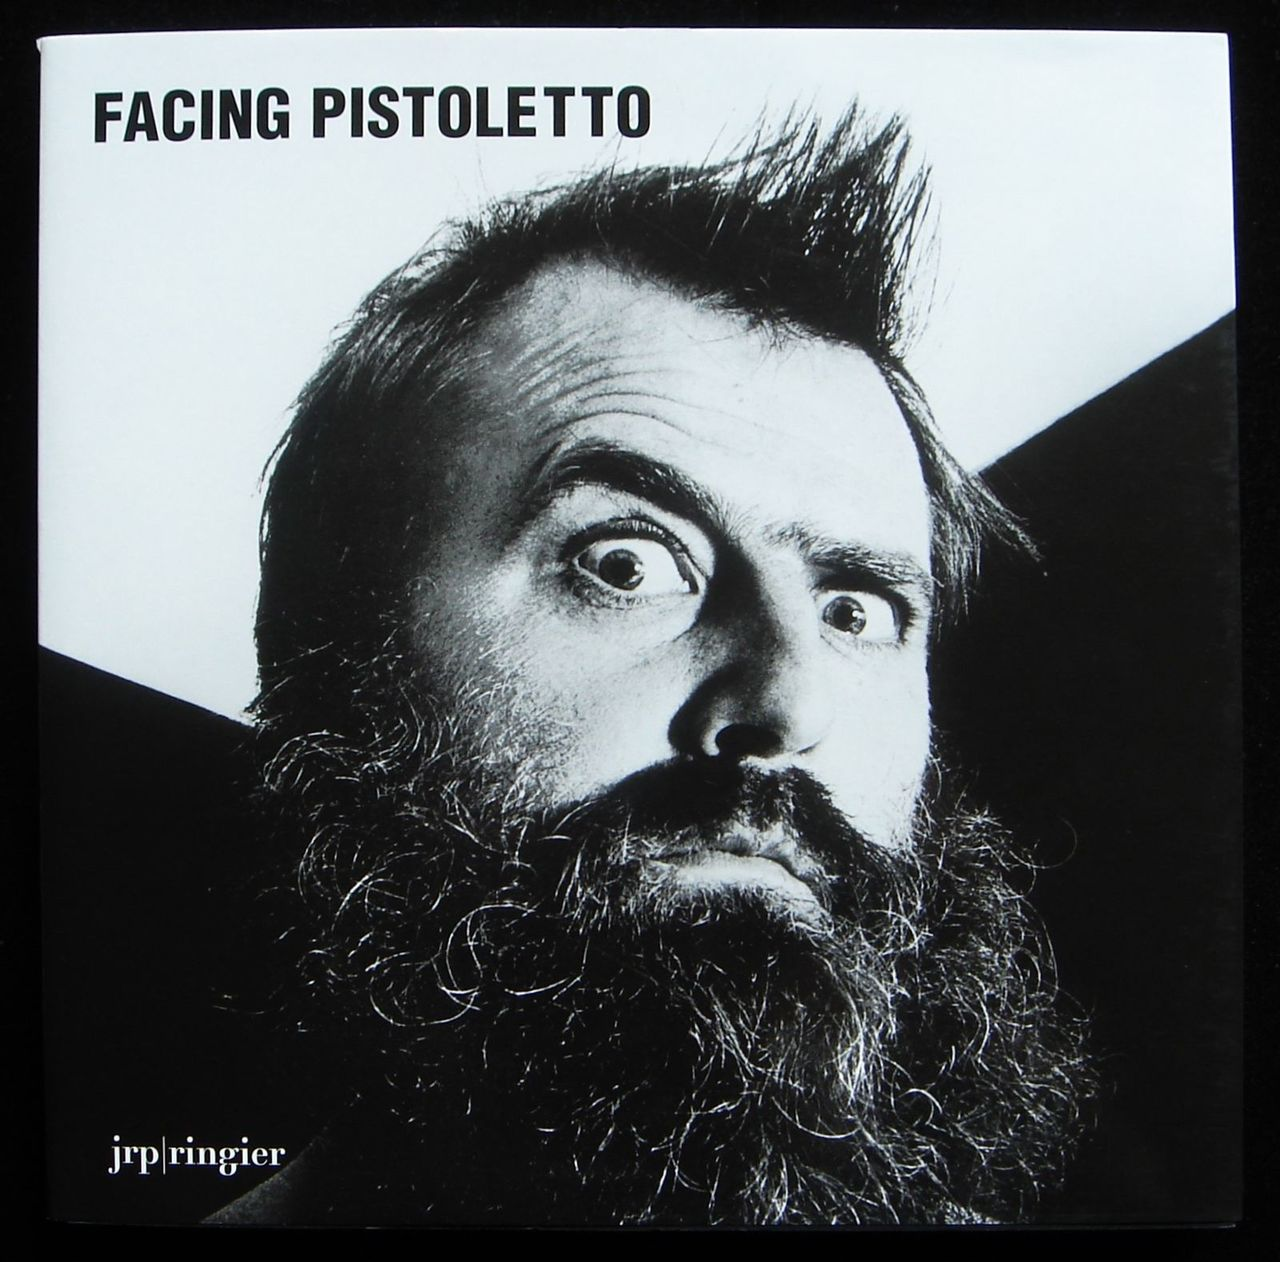 FACING PISTOLETTO, by Andrea Bellini 2009 [signed] Art Performance Sculpture